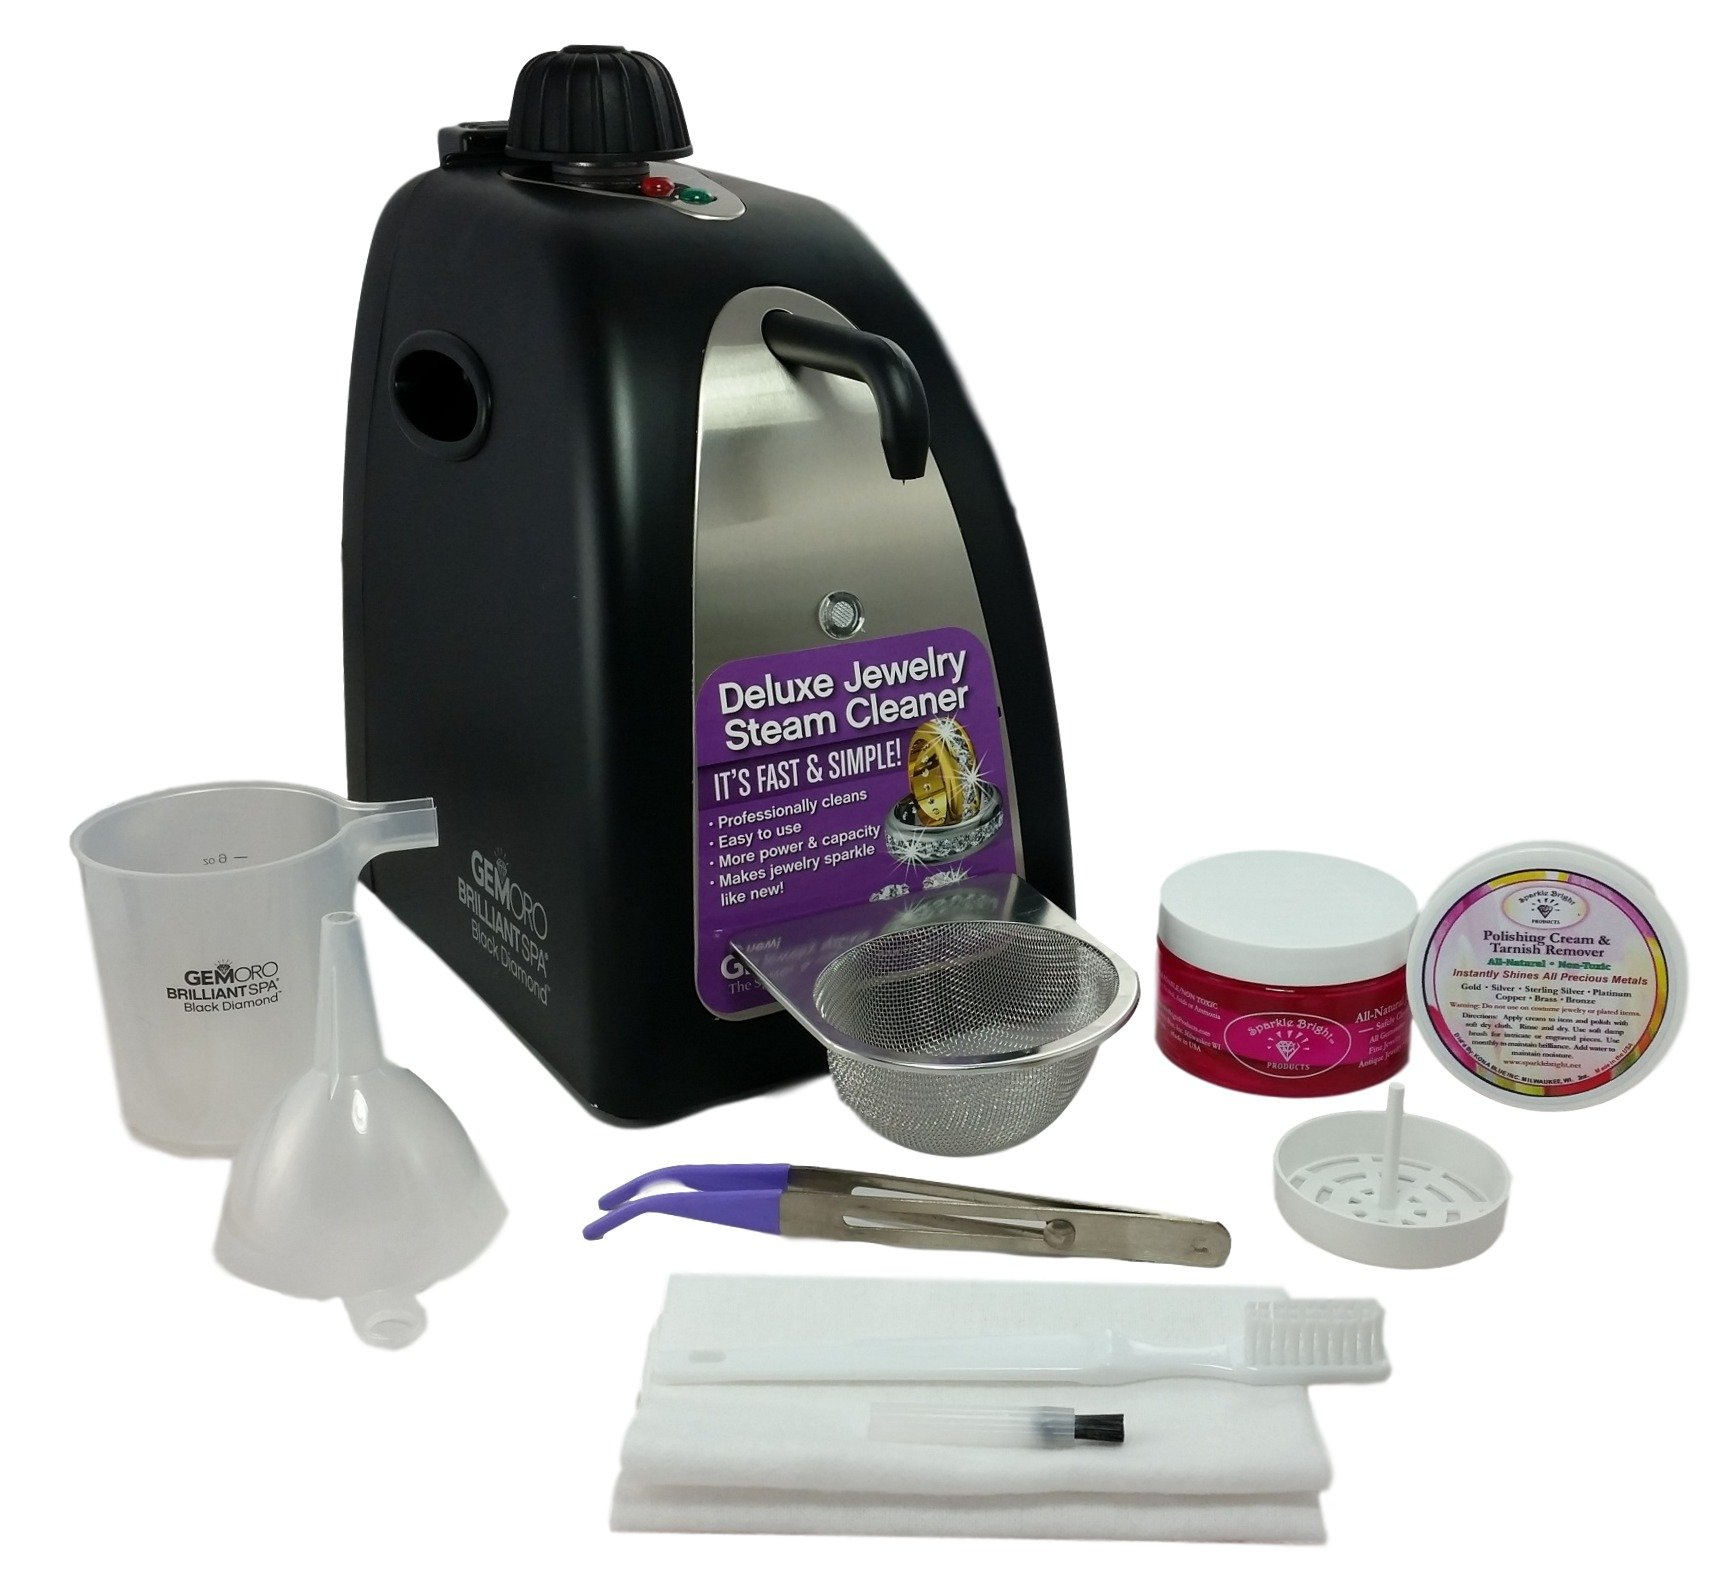 GEMORO 0362 BLACK DIAMOND BRILLIANT SPA BLACK MATTE STEAM JEWELRY CLEANING KIT Includes Sparkle Bright Products Jewelry Cleaner Kit